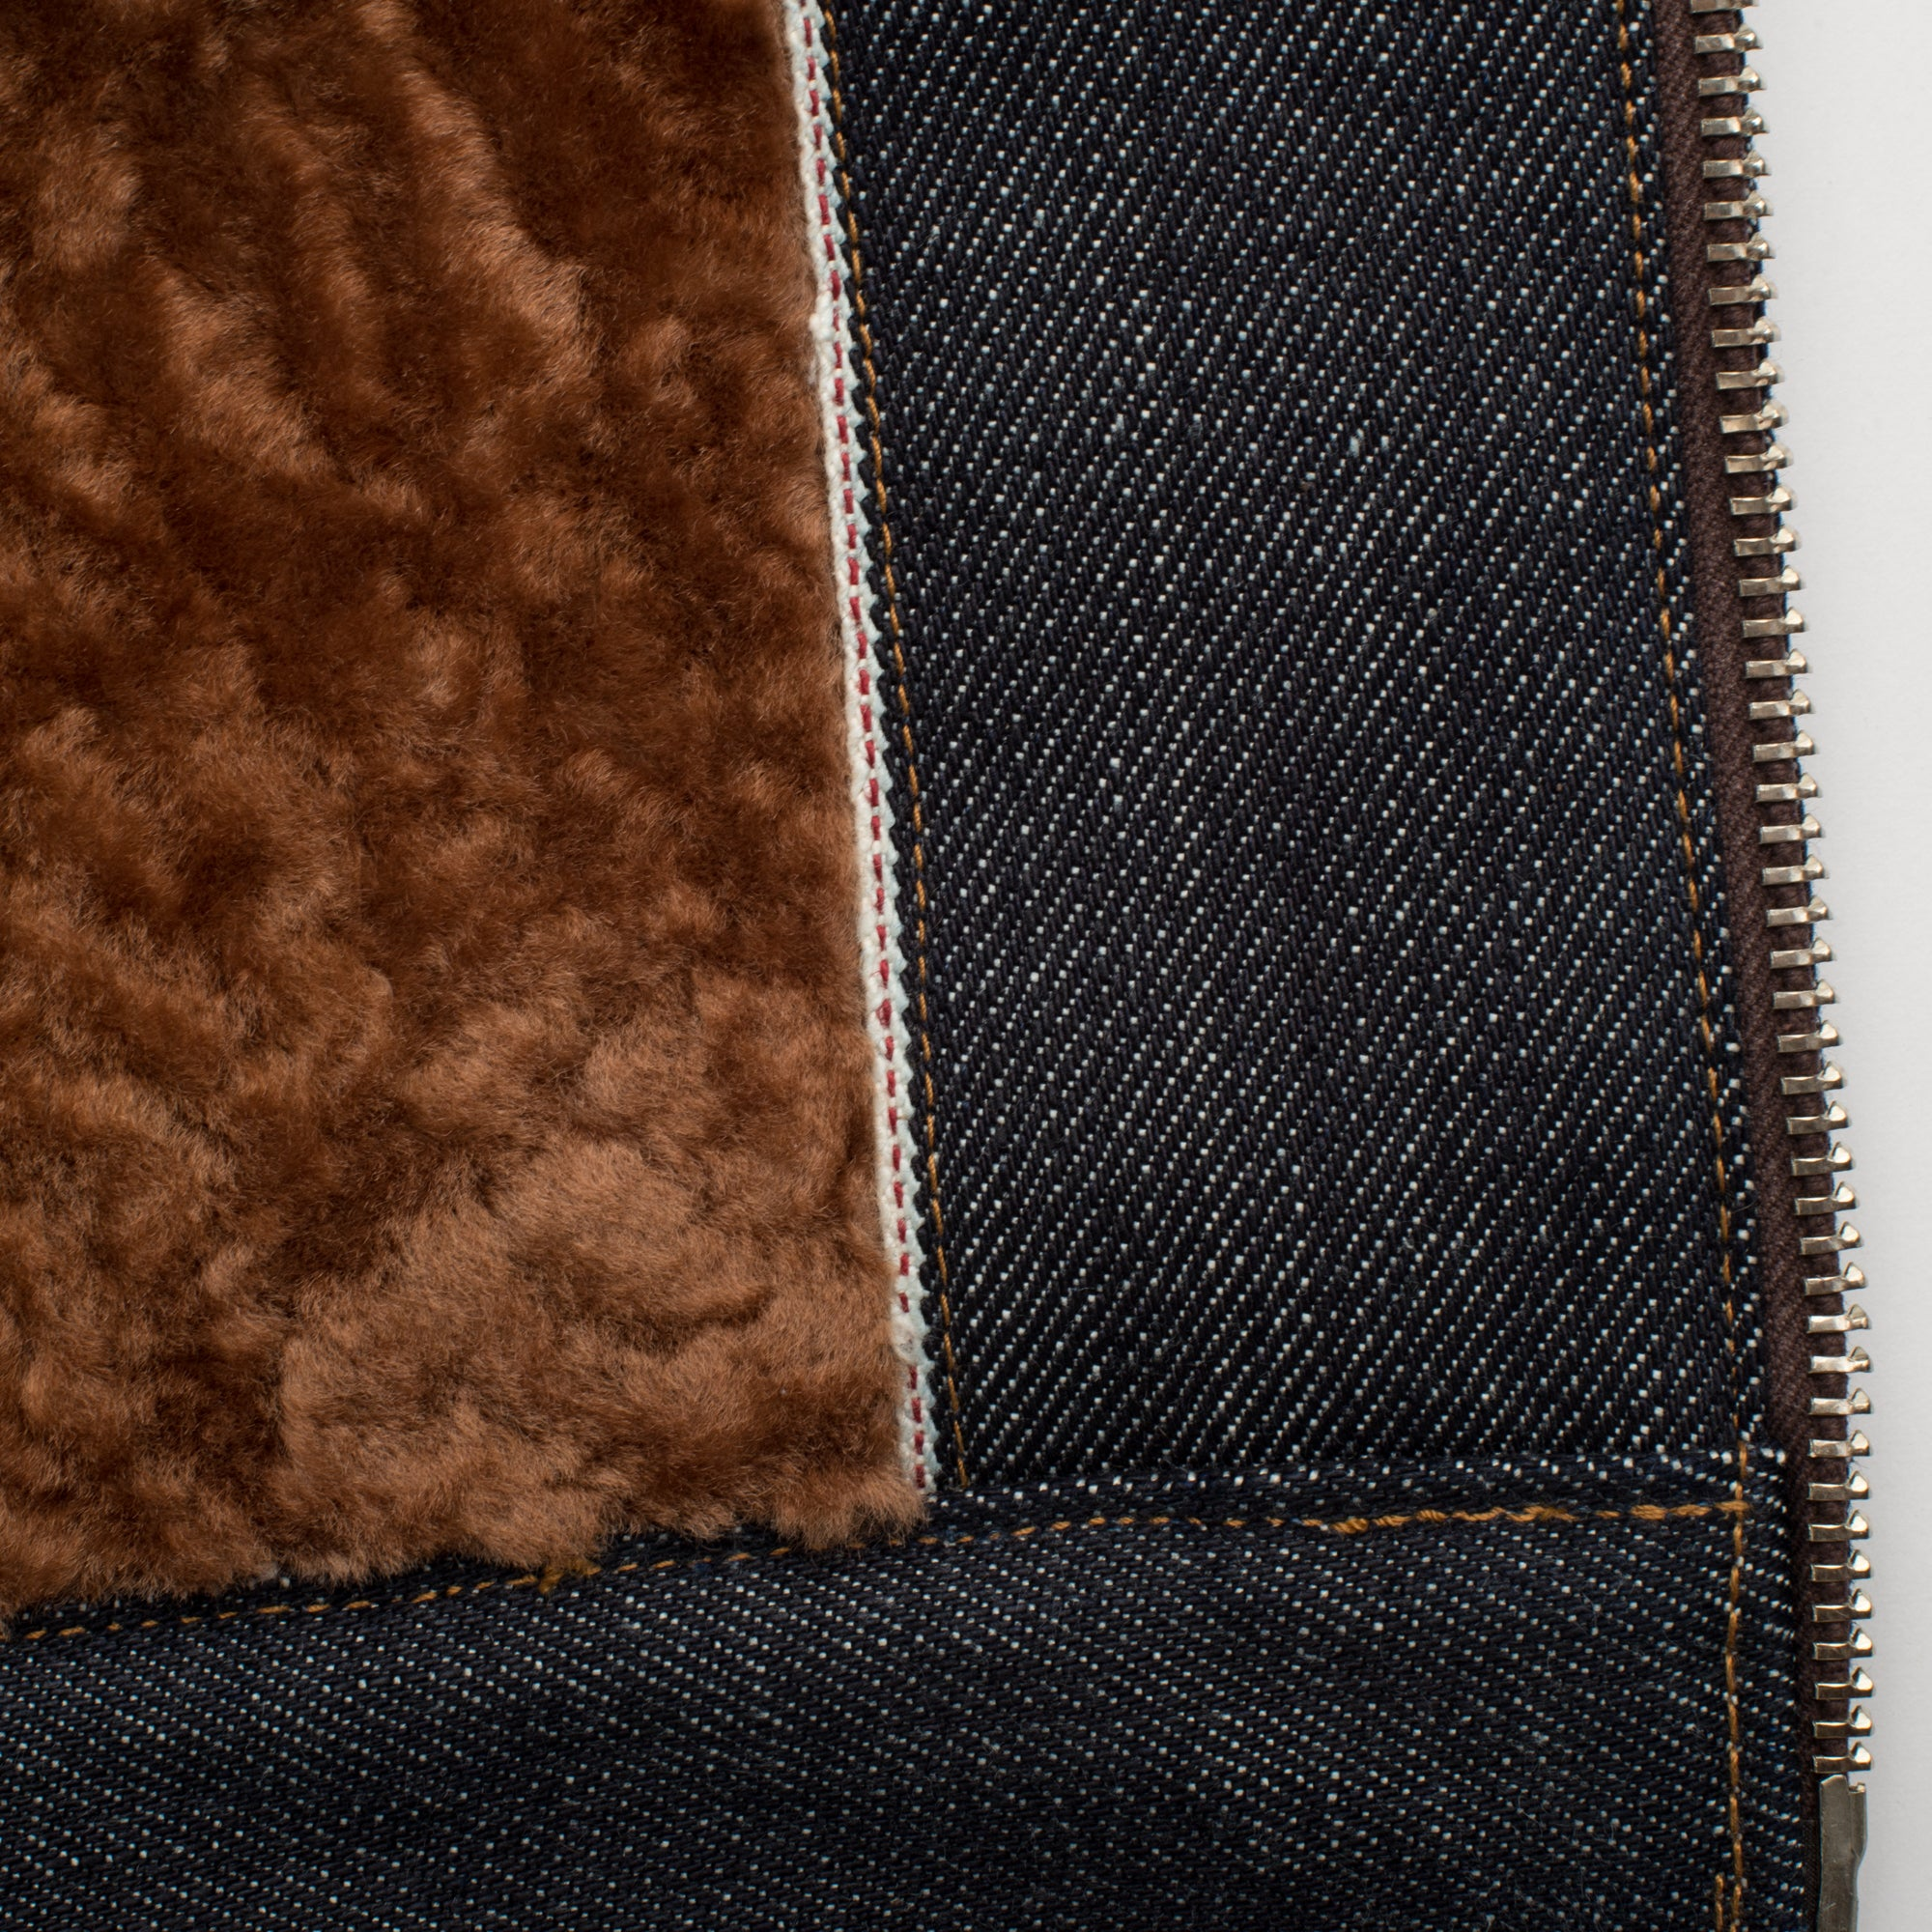 RJ2 Denim <span>Chocolate Shearling</span>